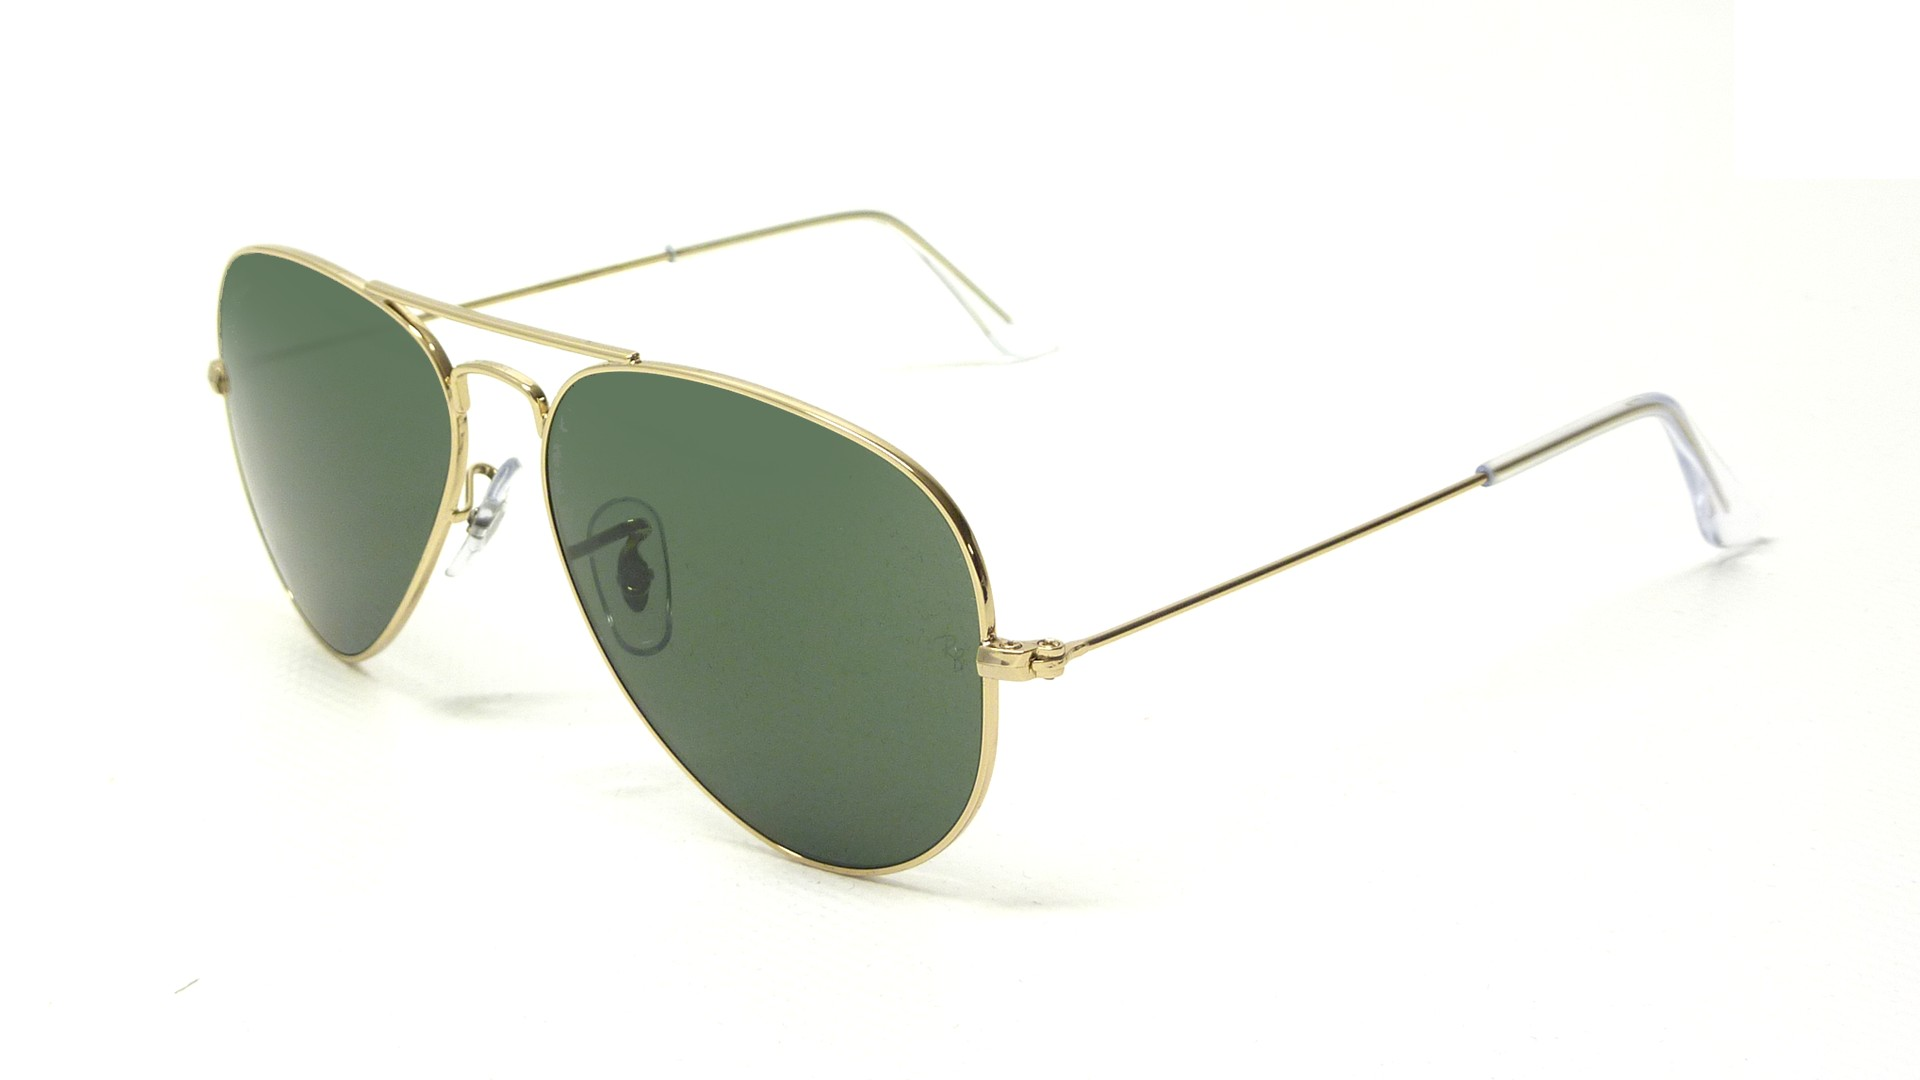 2551ef02fd1 Ray Ban Large Metal Aviator Sunglasses Model No 3025 L0205 « One ...